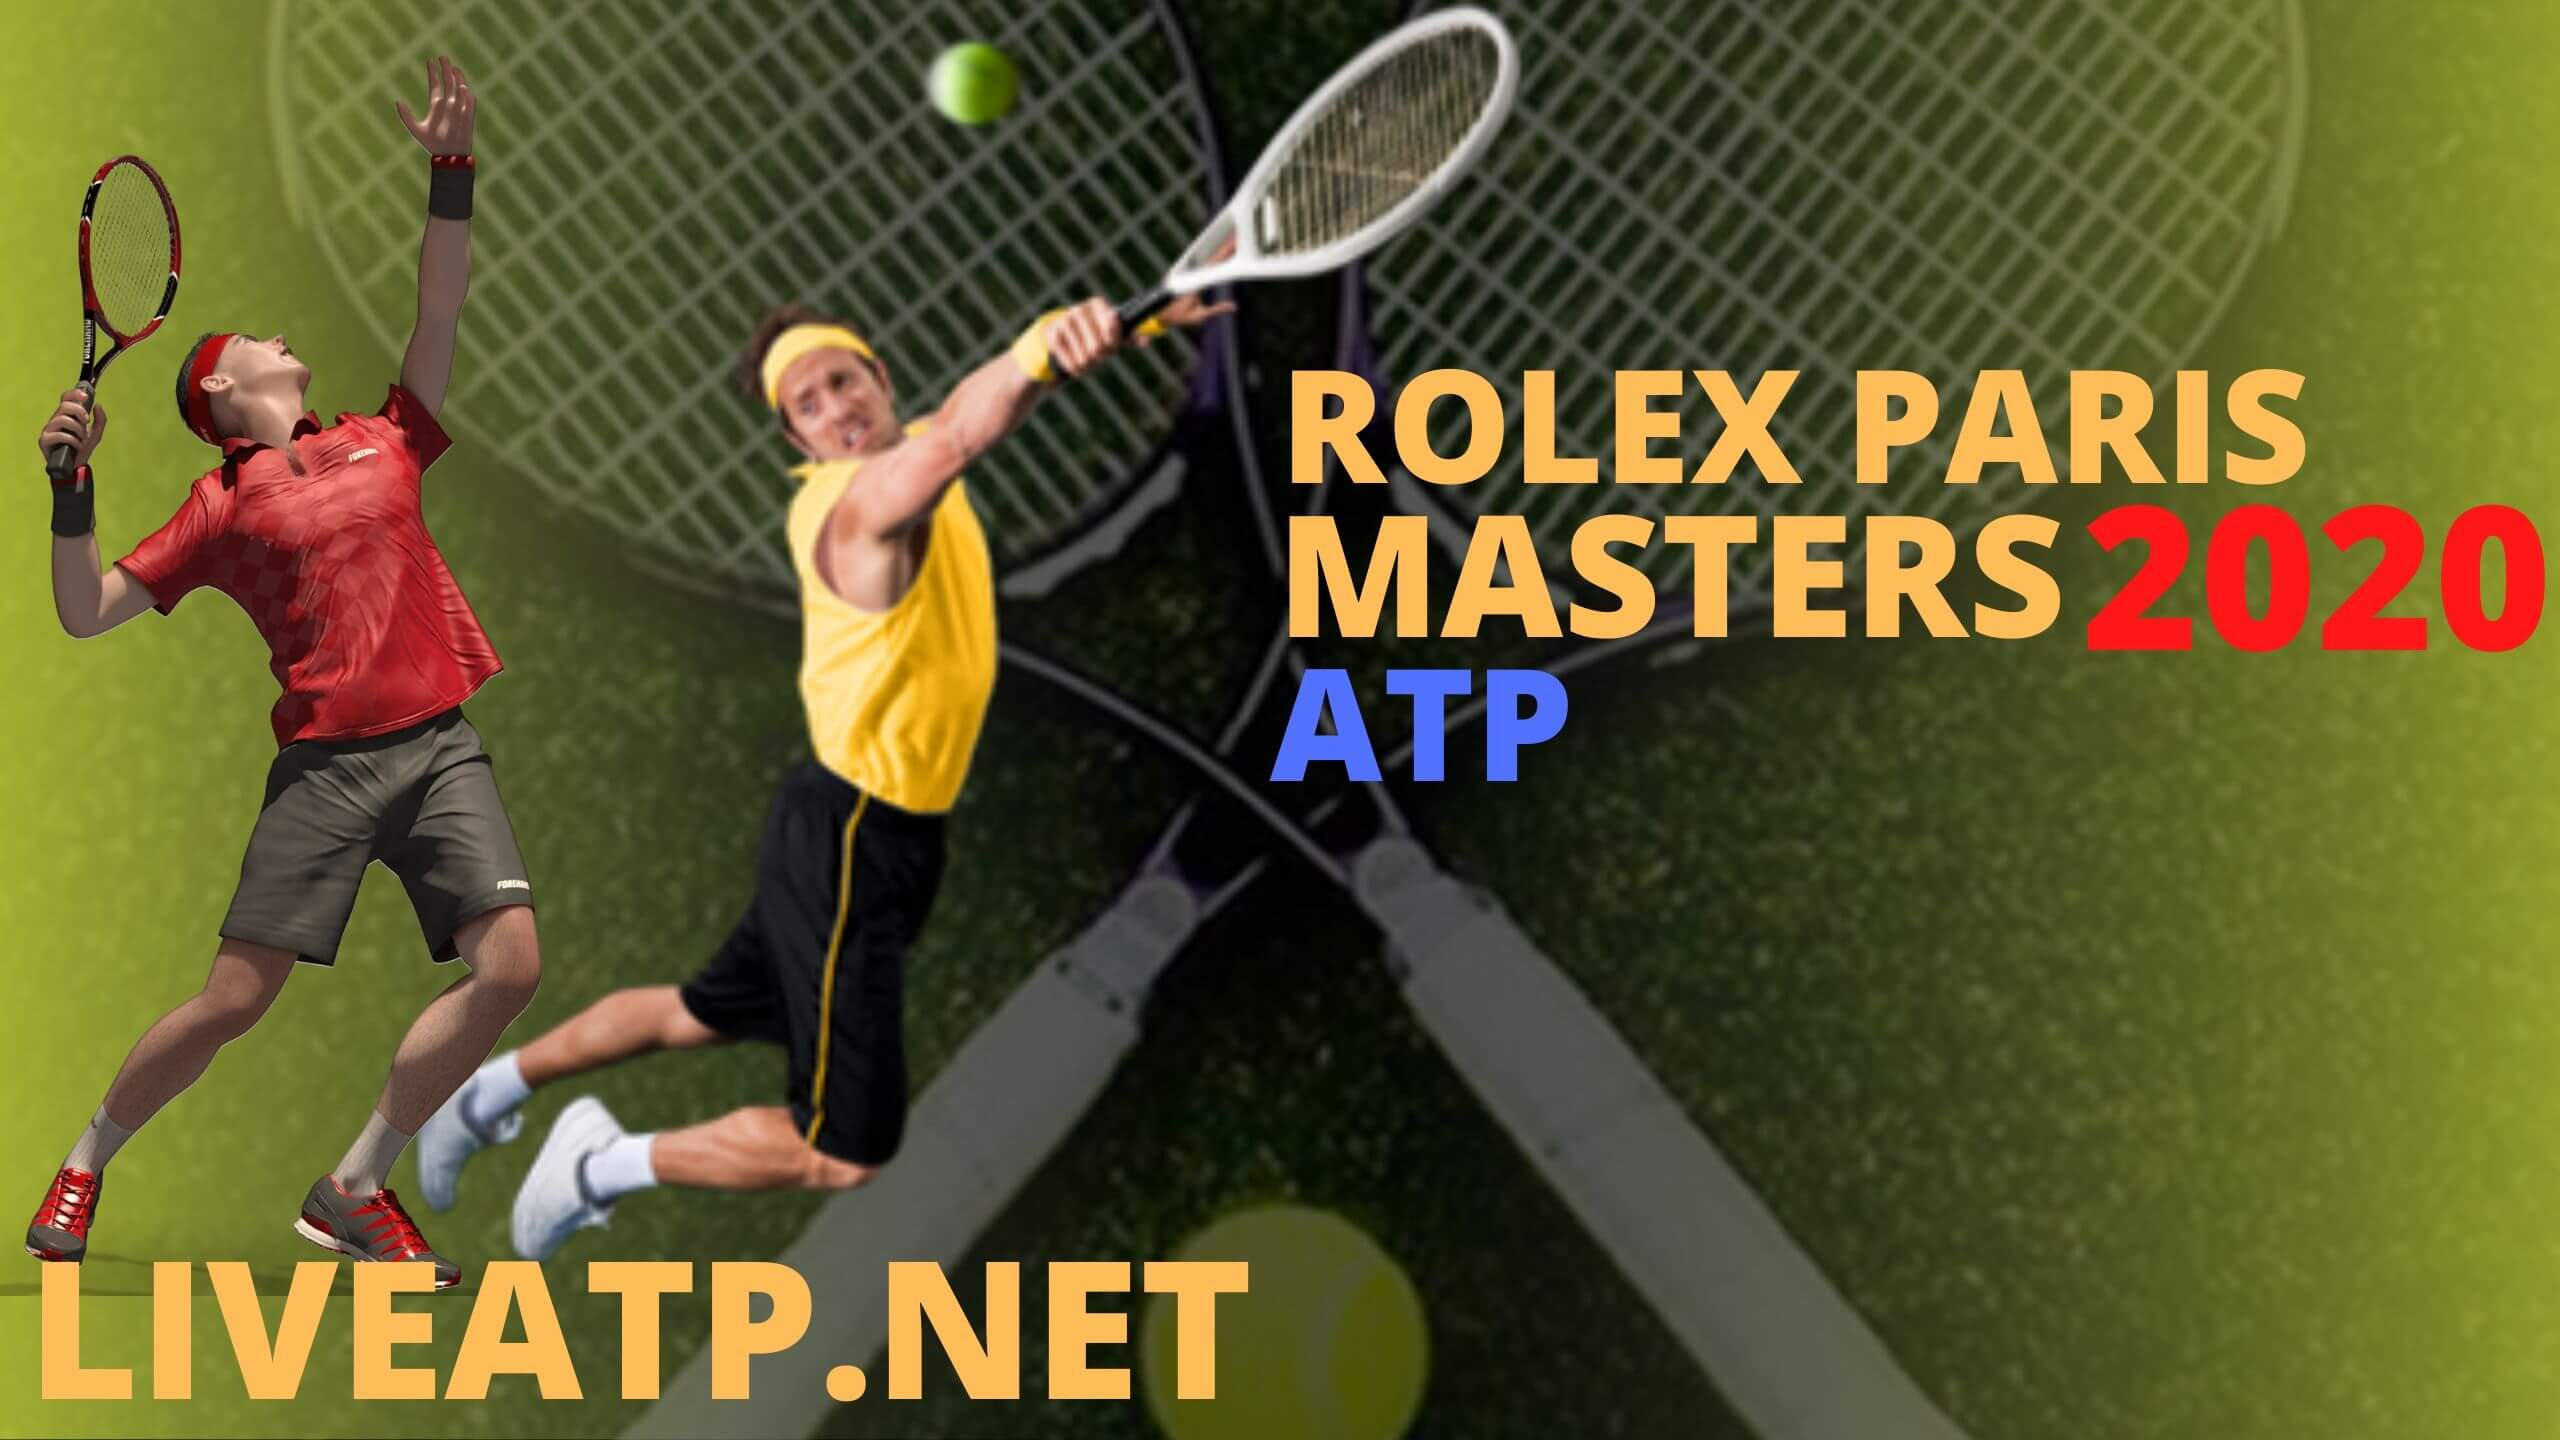 Rolex Paris Masters Live Stream 2020 | Day 4